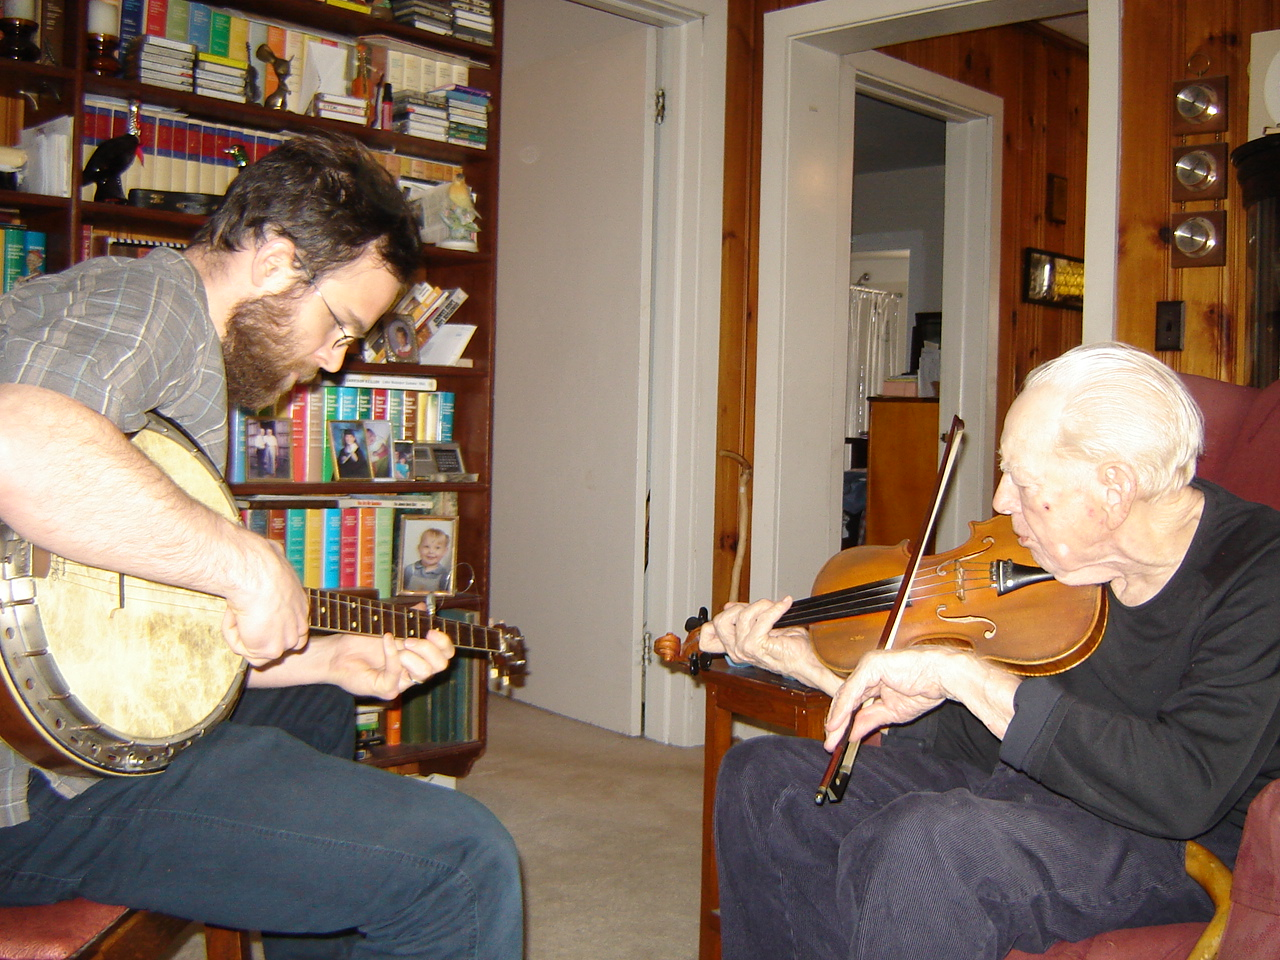 Charlie Acuff and Joseph Decosimo in Alcoa, Tennessee in 2008.